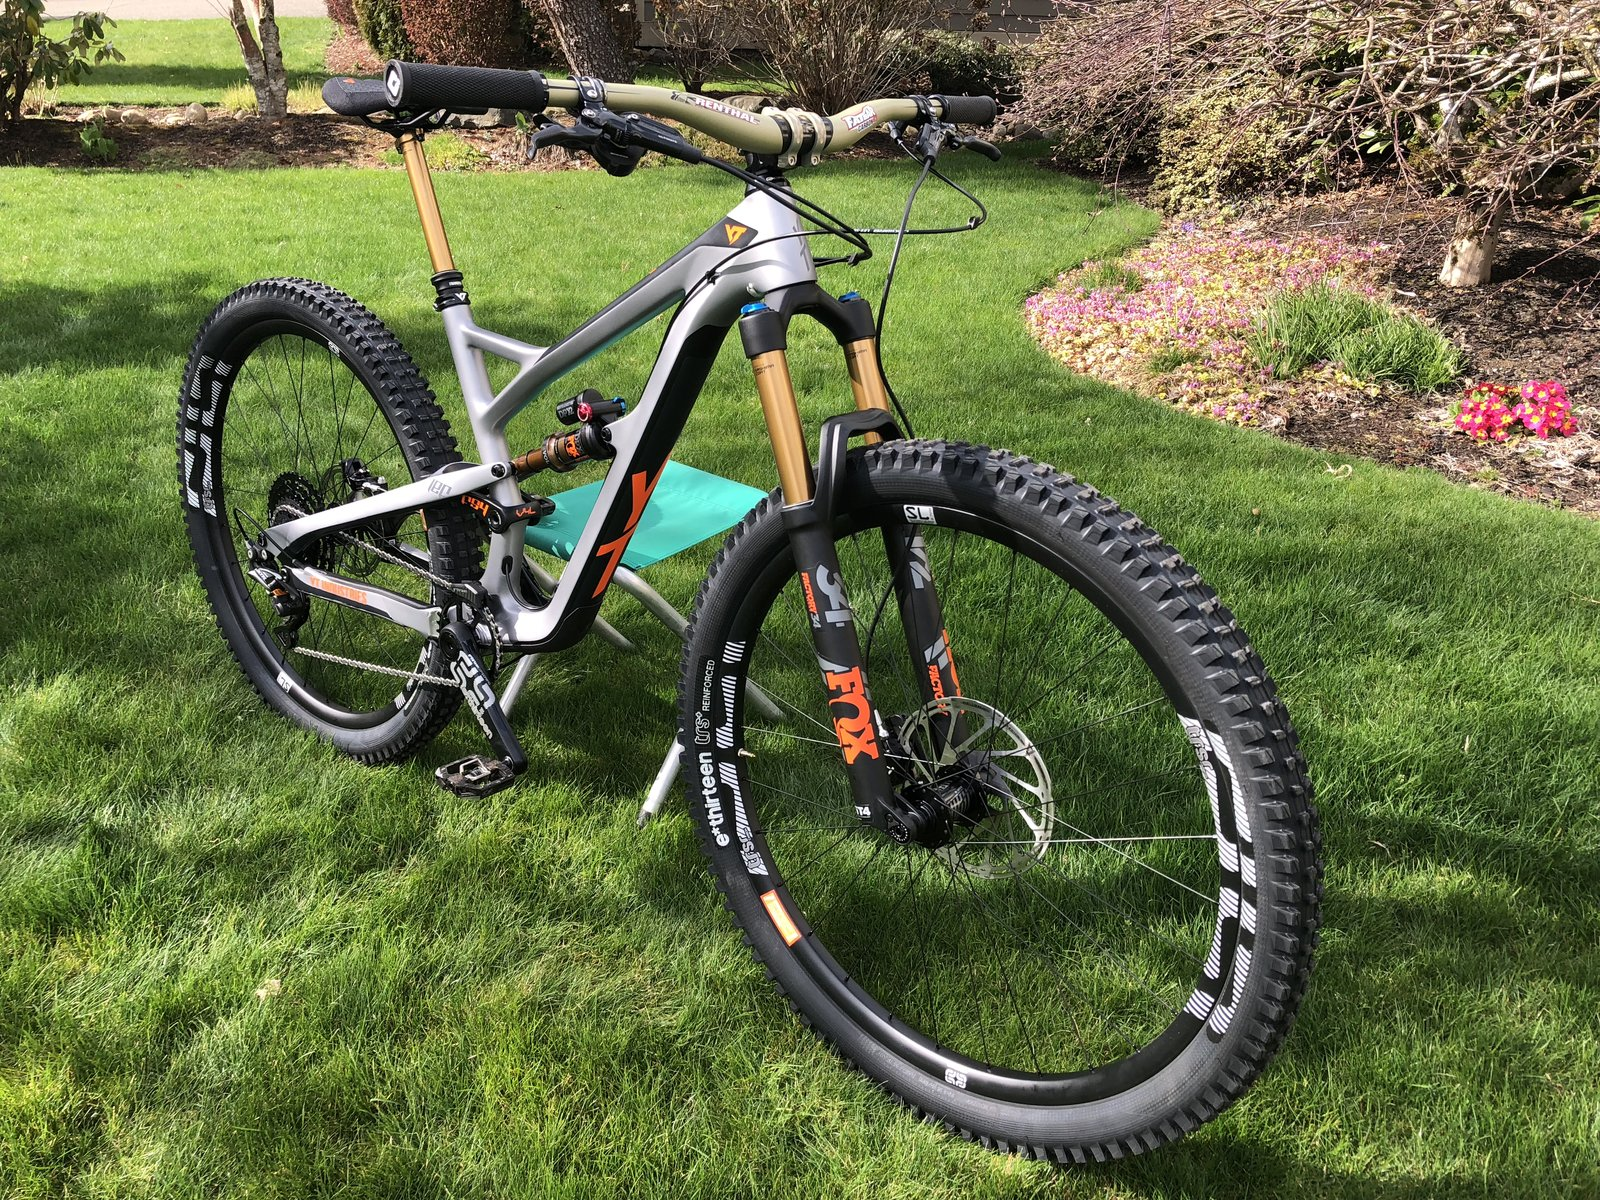 New Bike YT Jeffsy 29er CF Pro Race | imtbtrails